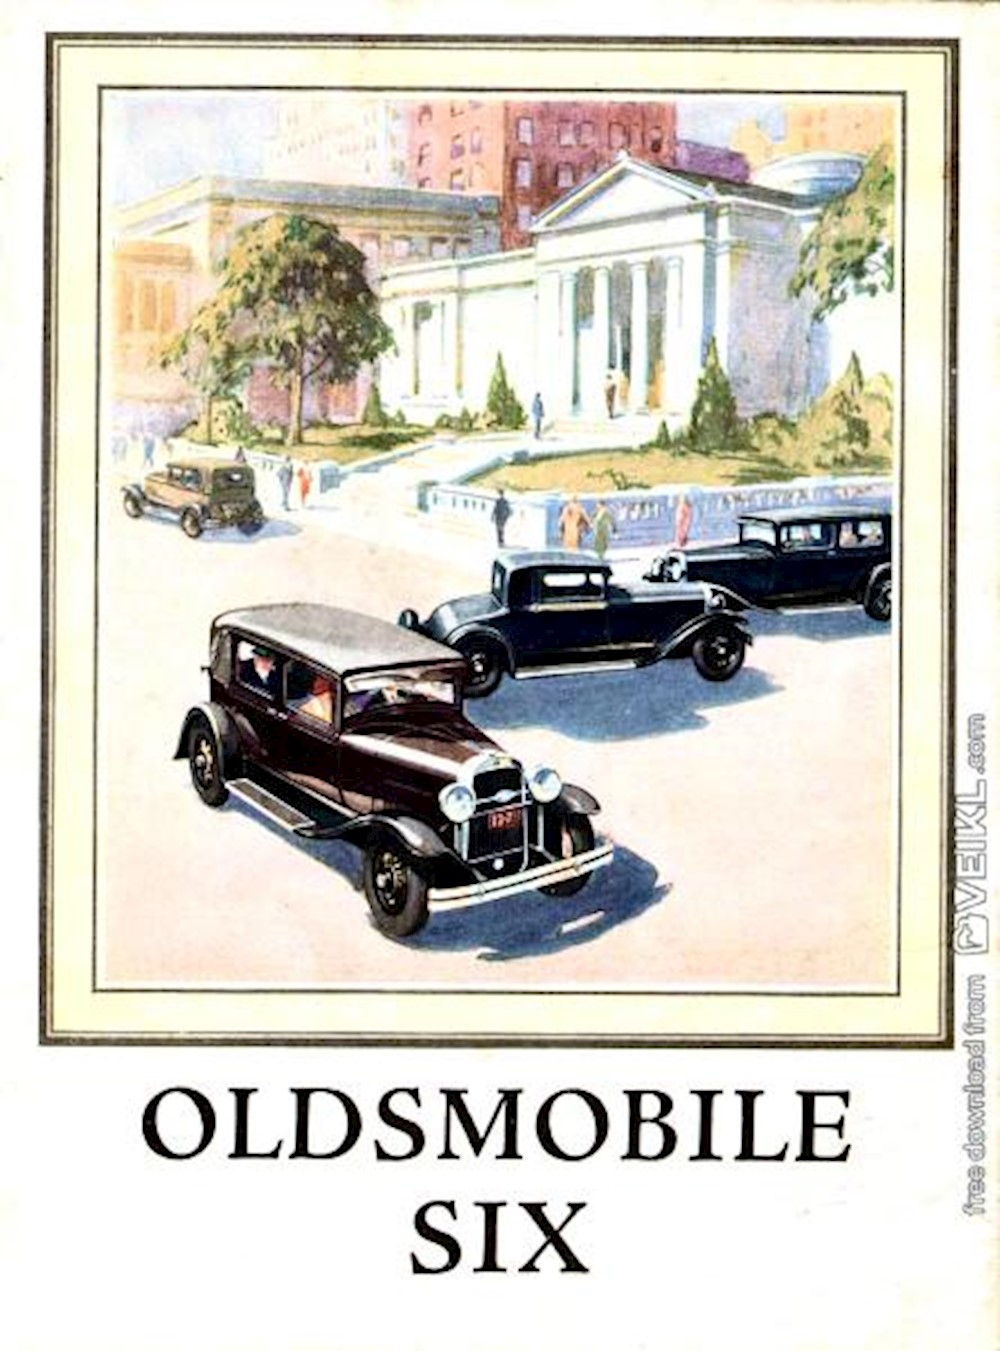 Oldsmobile SIX Full Line Brochure 1929 EN